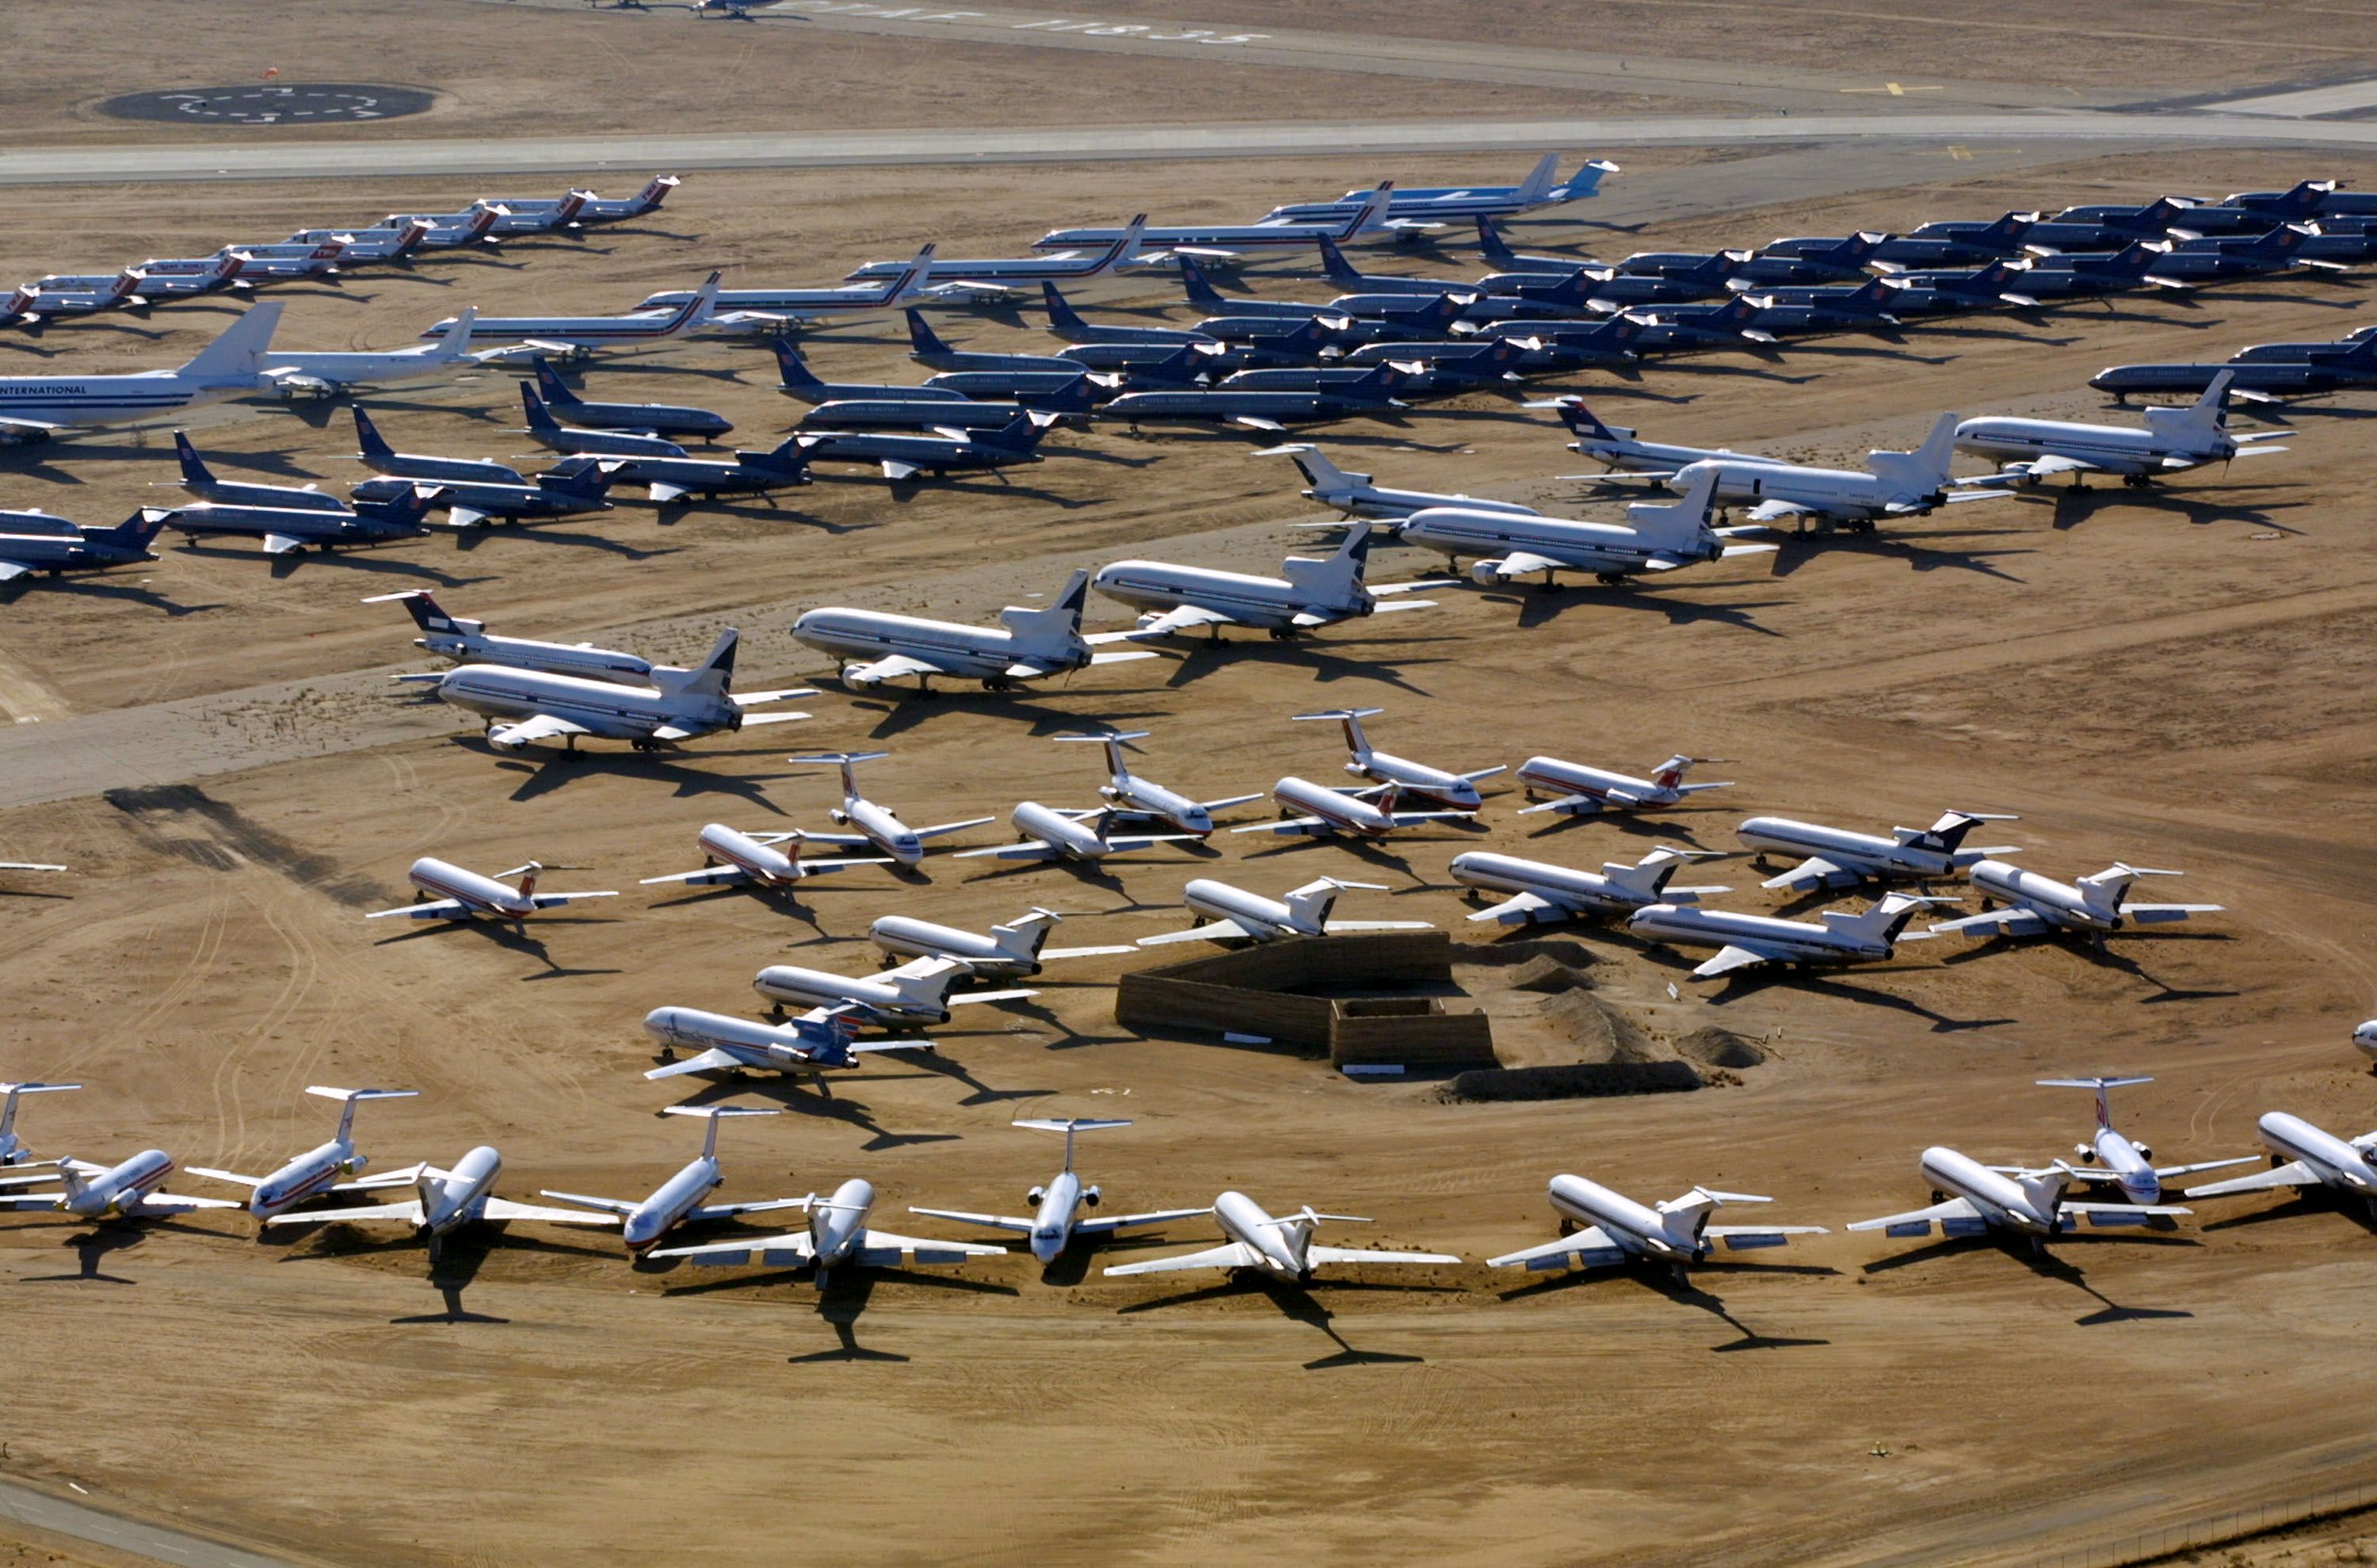 Airline industry cuts profit outlook; cargo business hurt by trade war